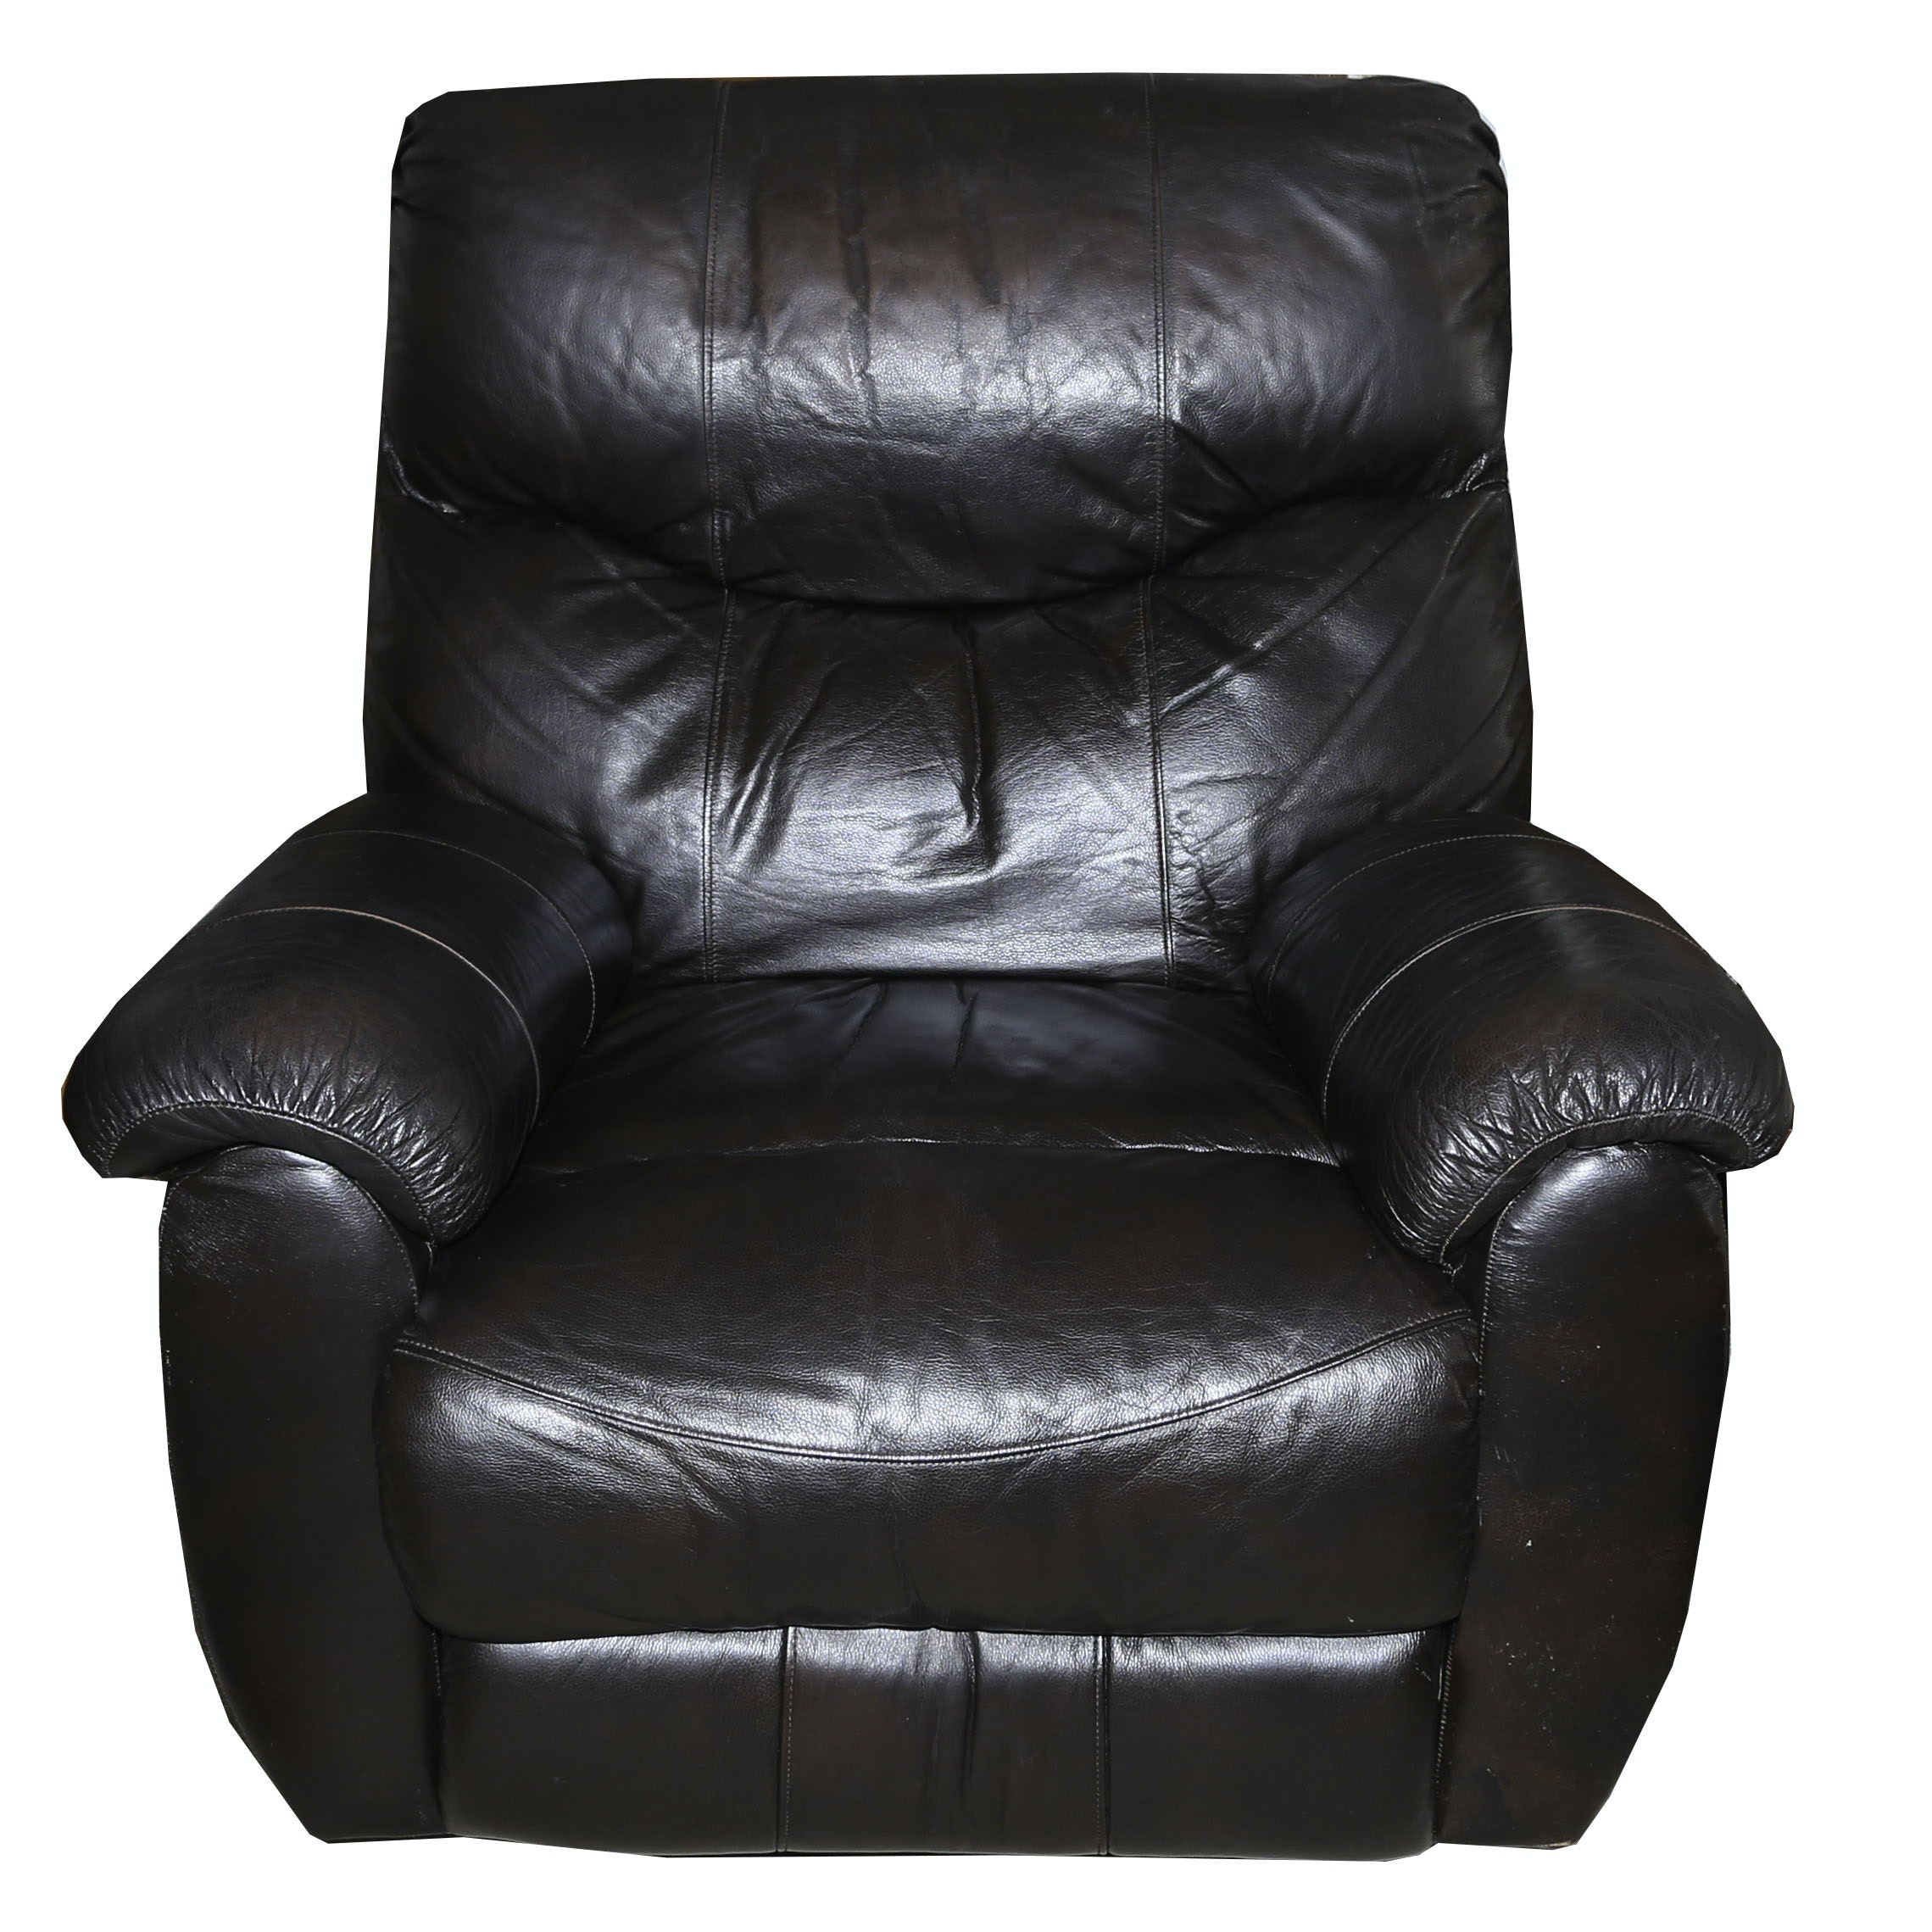 Leather Upholstered Recliner, 21st Century